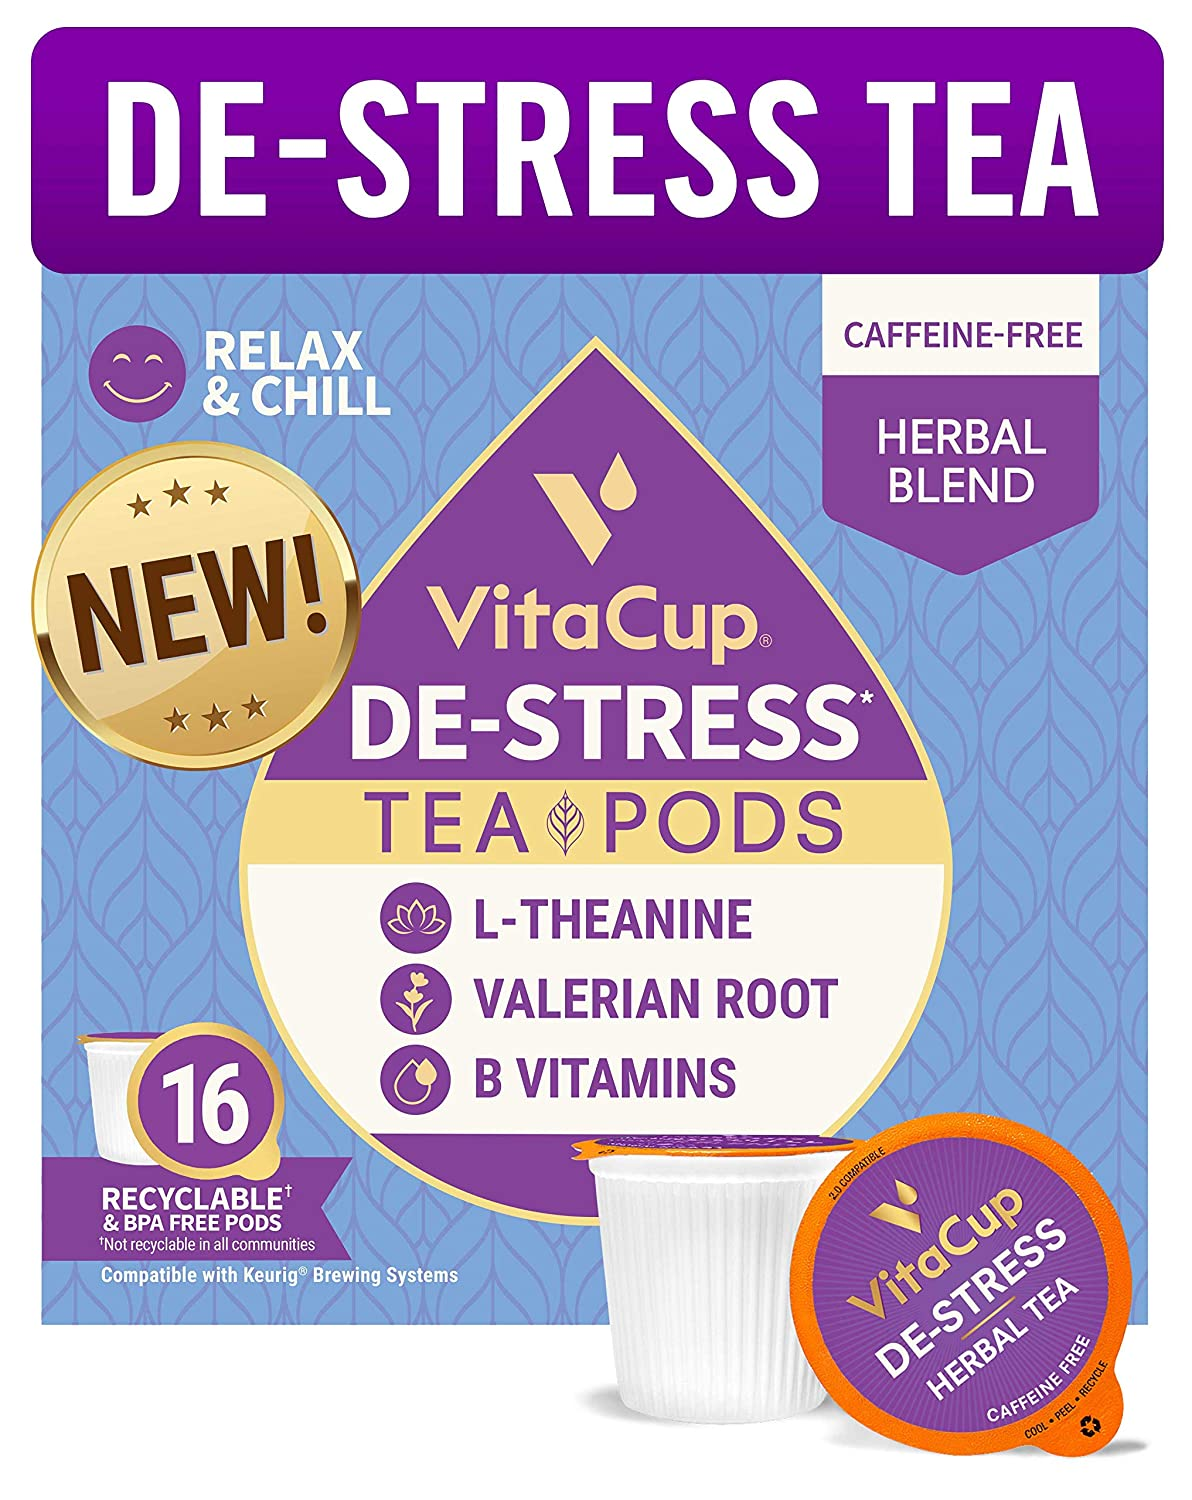 VitaCup DeStress Herbal Tea Pods 16 Ct | Relax & Chill | L-Theanine, Valerian Root & Vitamins B1, B5, B6, B9, B12 | Compatible with K-Cup Single Serve Brewers Including Keurig 2.0